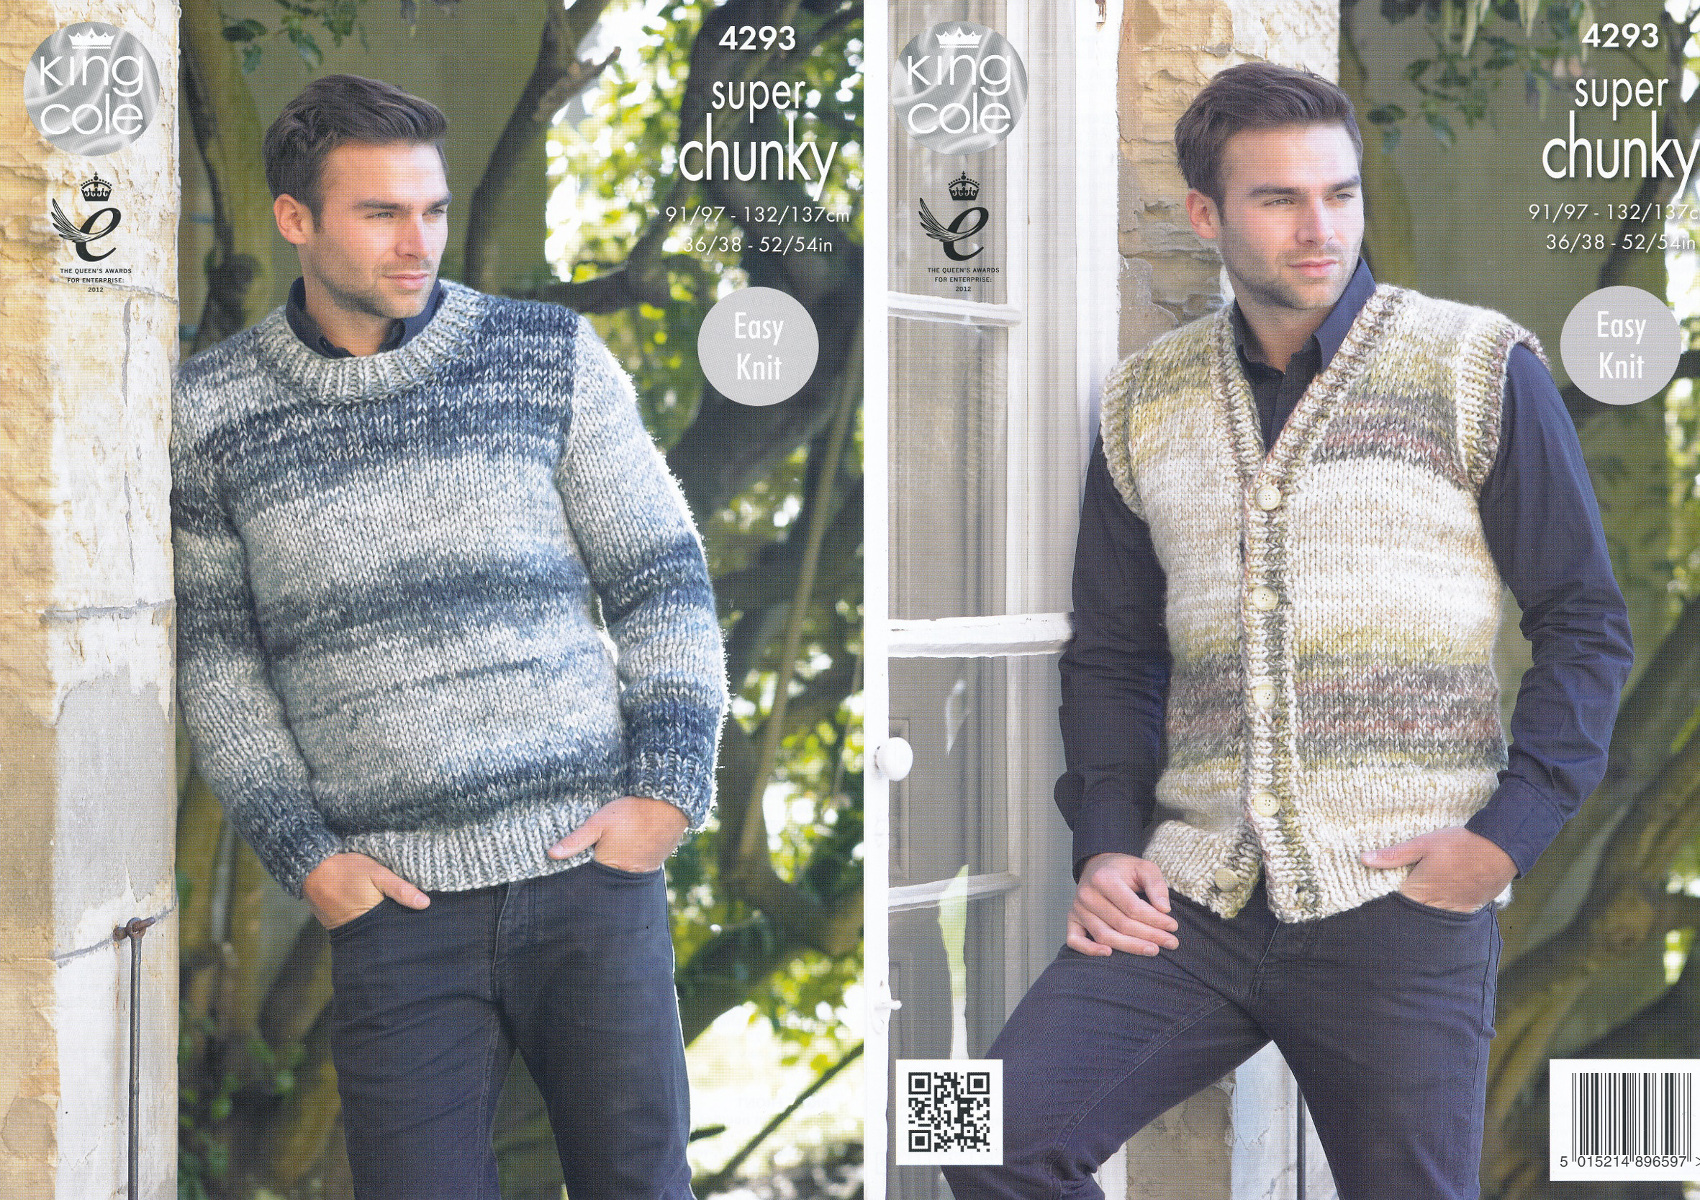 Mens super chunky knitting pattern king cole easy knit waistcoat item description this easy knit king cole super chunky knitting pattern bankloansurffo Gallery